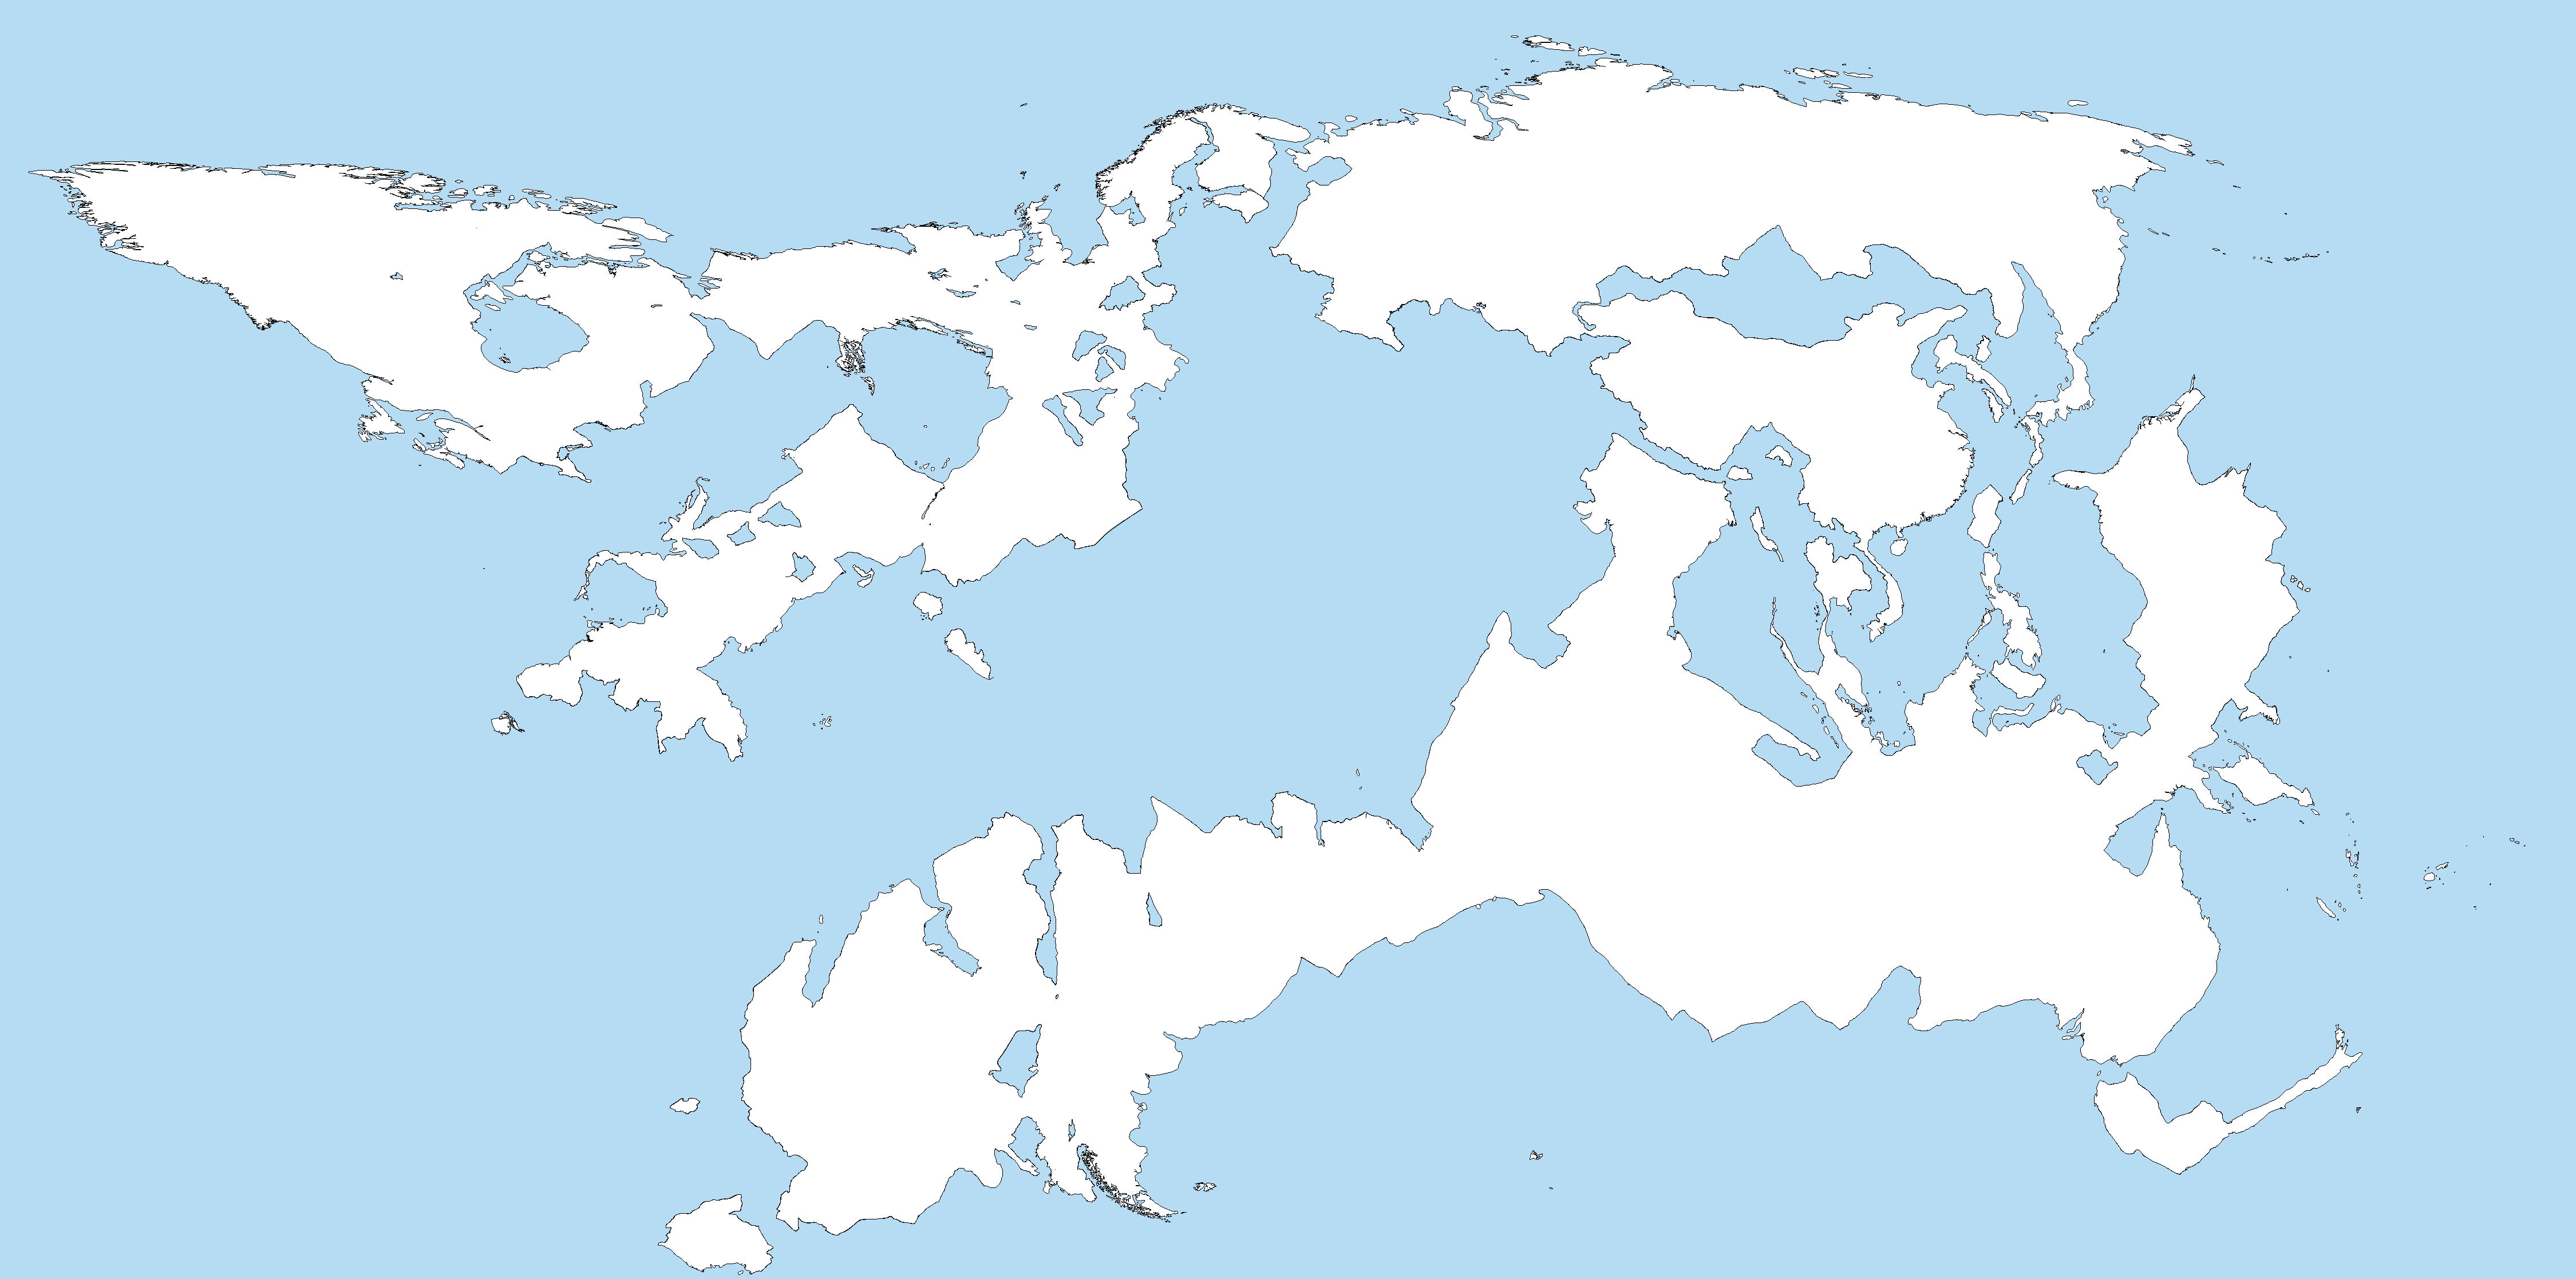 Https://i.pinimg.com/originals/70/7c/22/707c22f32d032dbdad1b90e3cf8c238d  Those Are All Blank Earth Maps, Here Are Some Fantasy Ones: